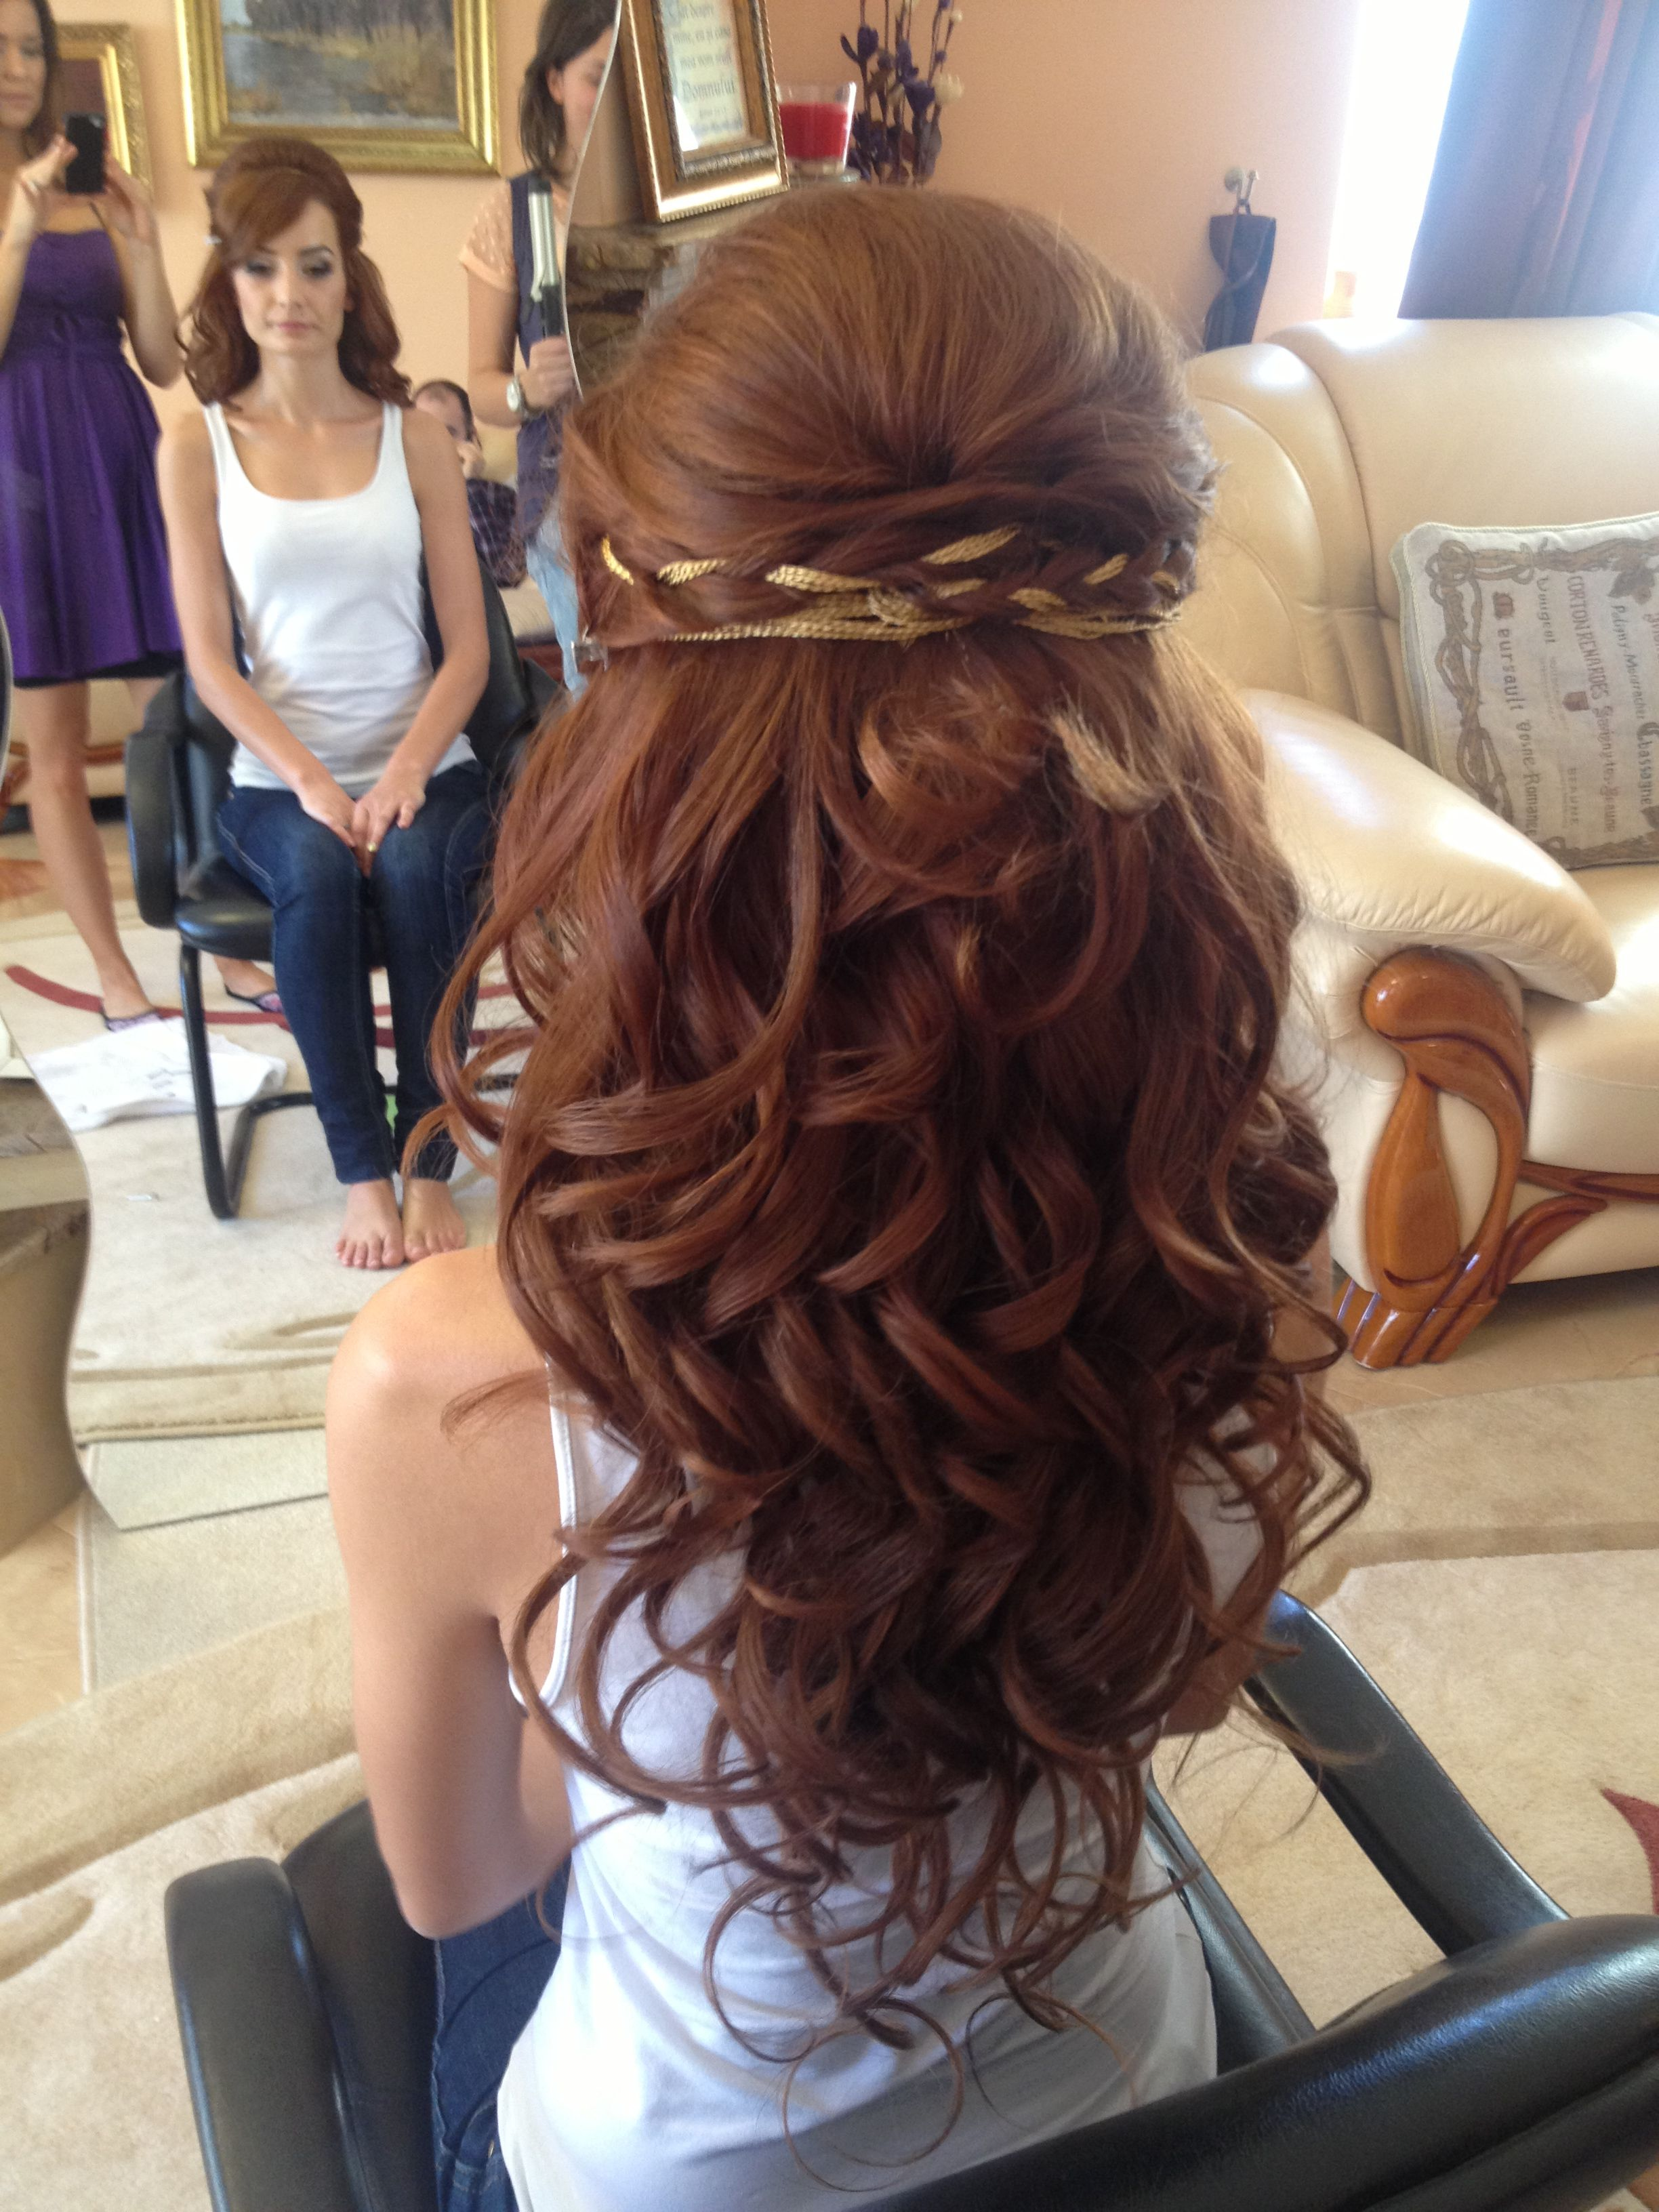 This braided wavy style is becoming more and more popular with